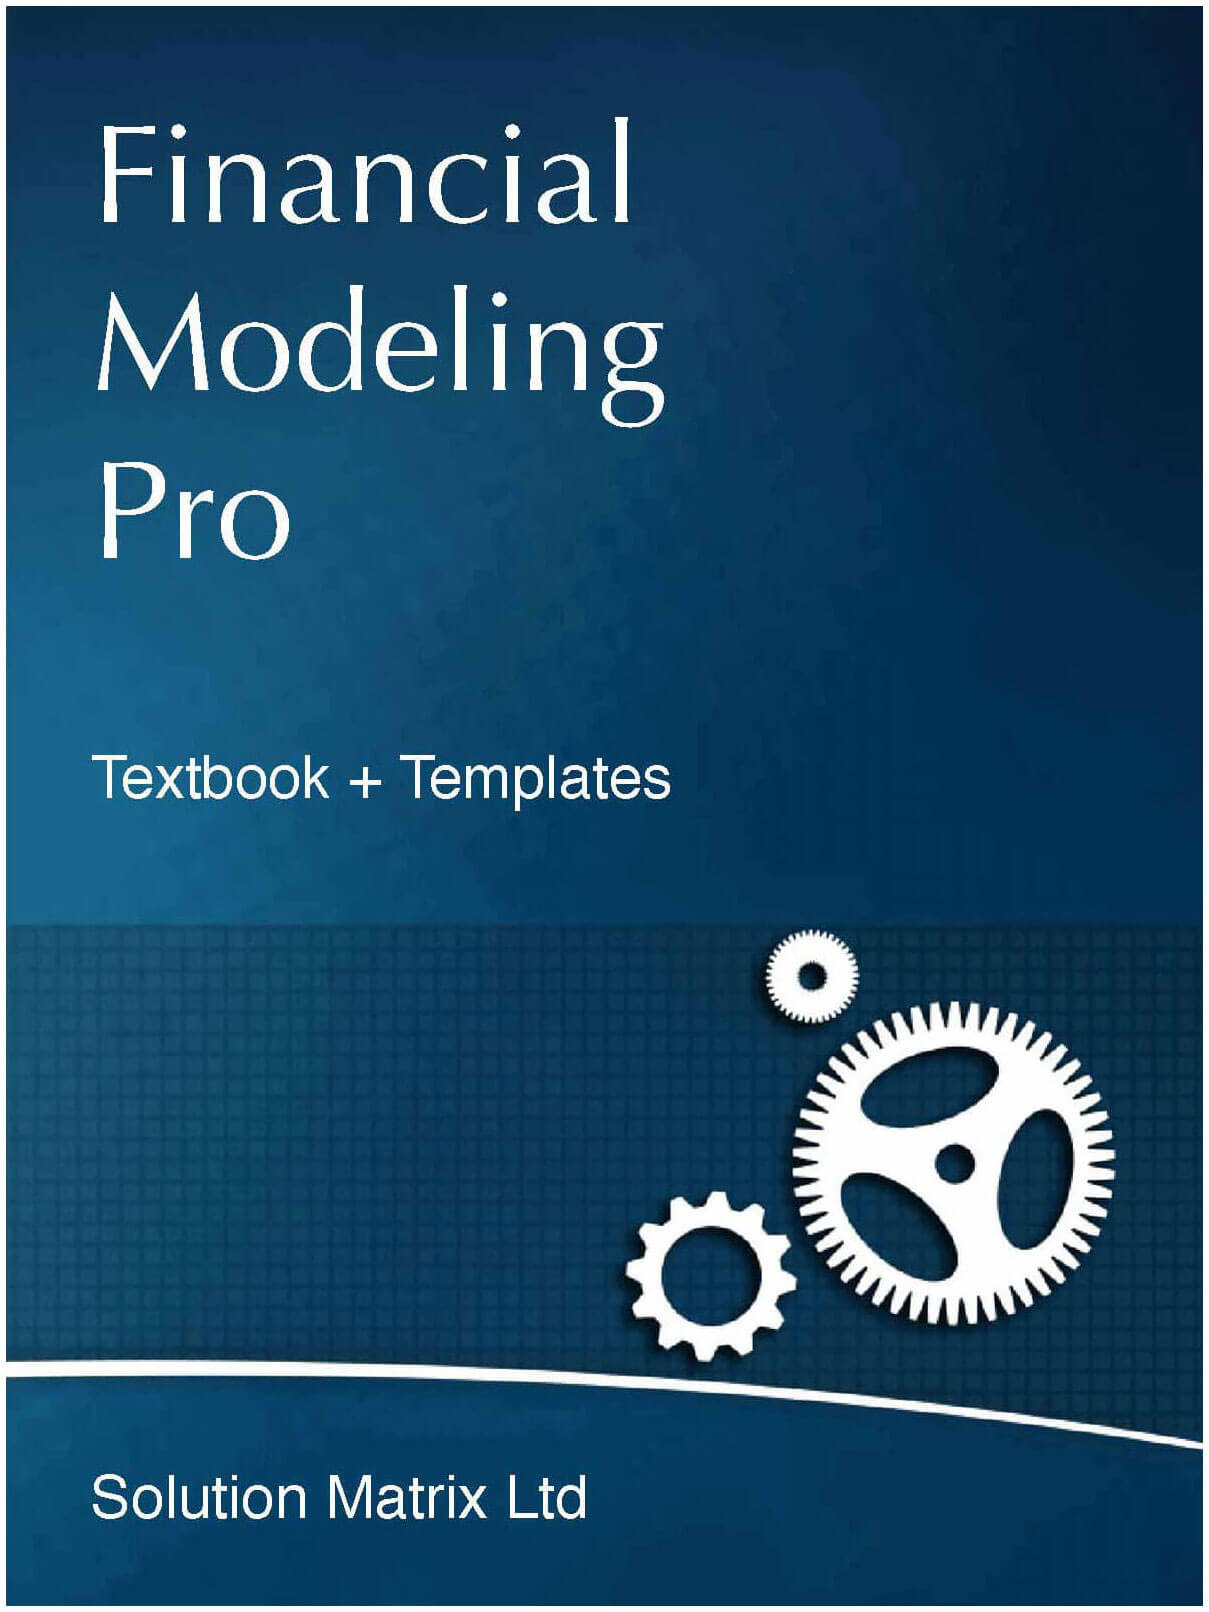 Buy the ebook Finanial Modeling Pro